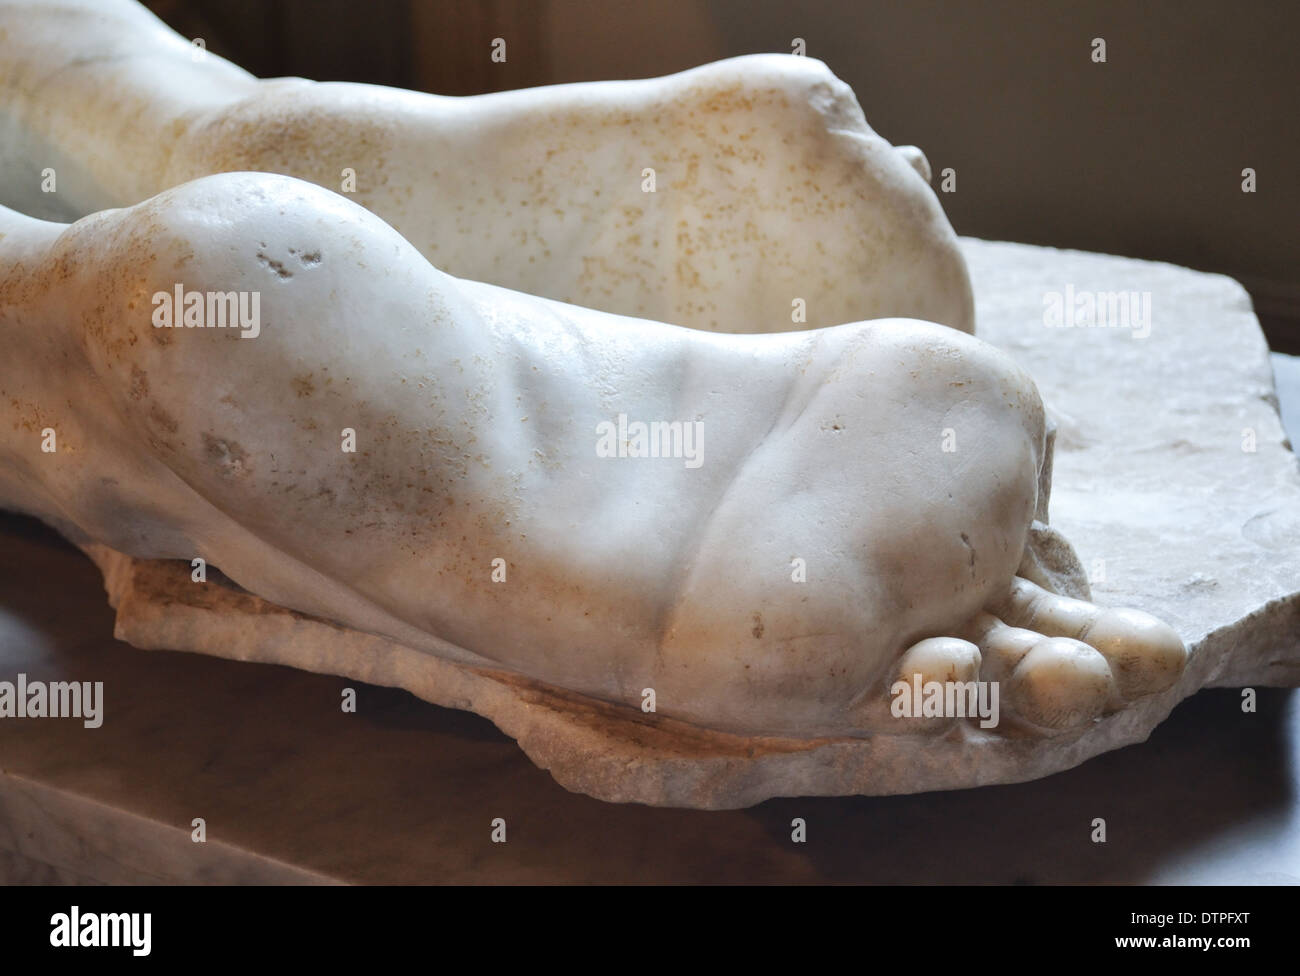 Fragment of an antique statue - foot - Stock Image